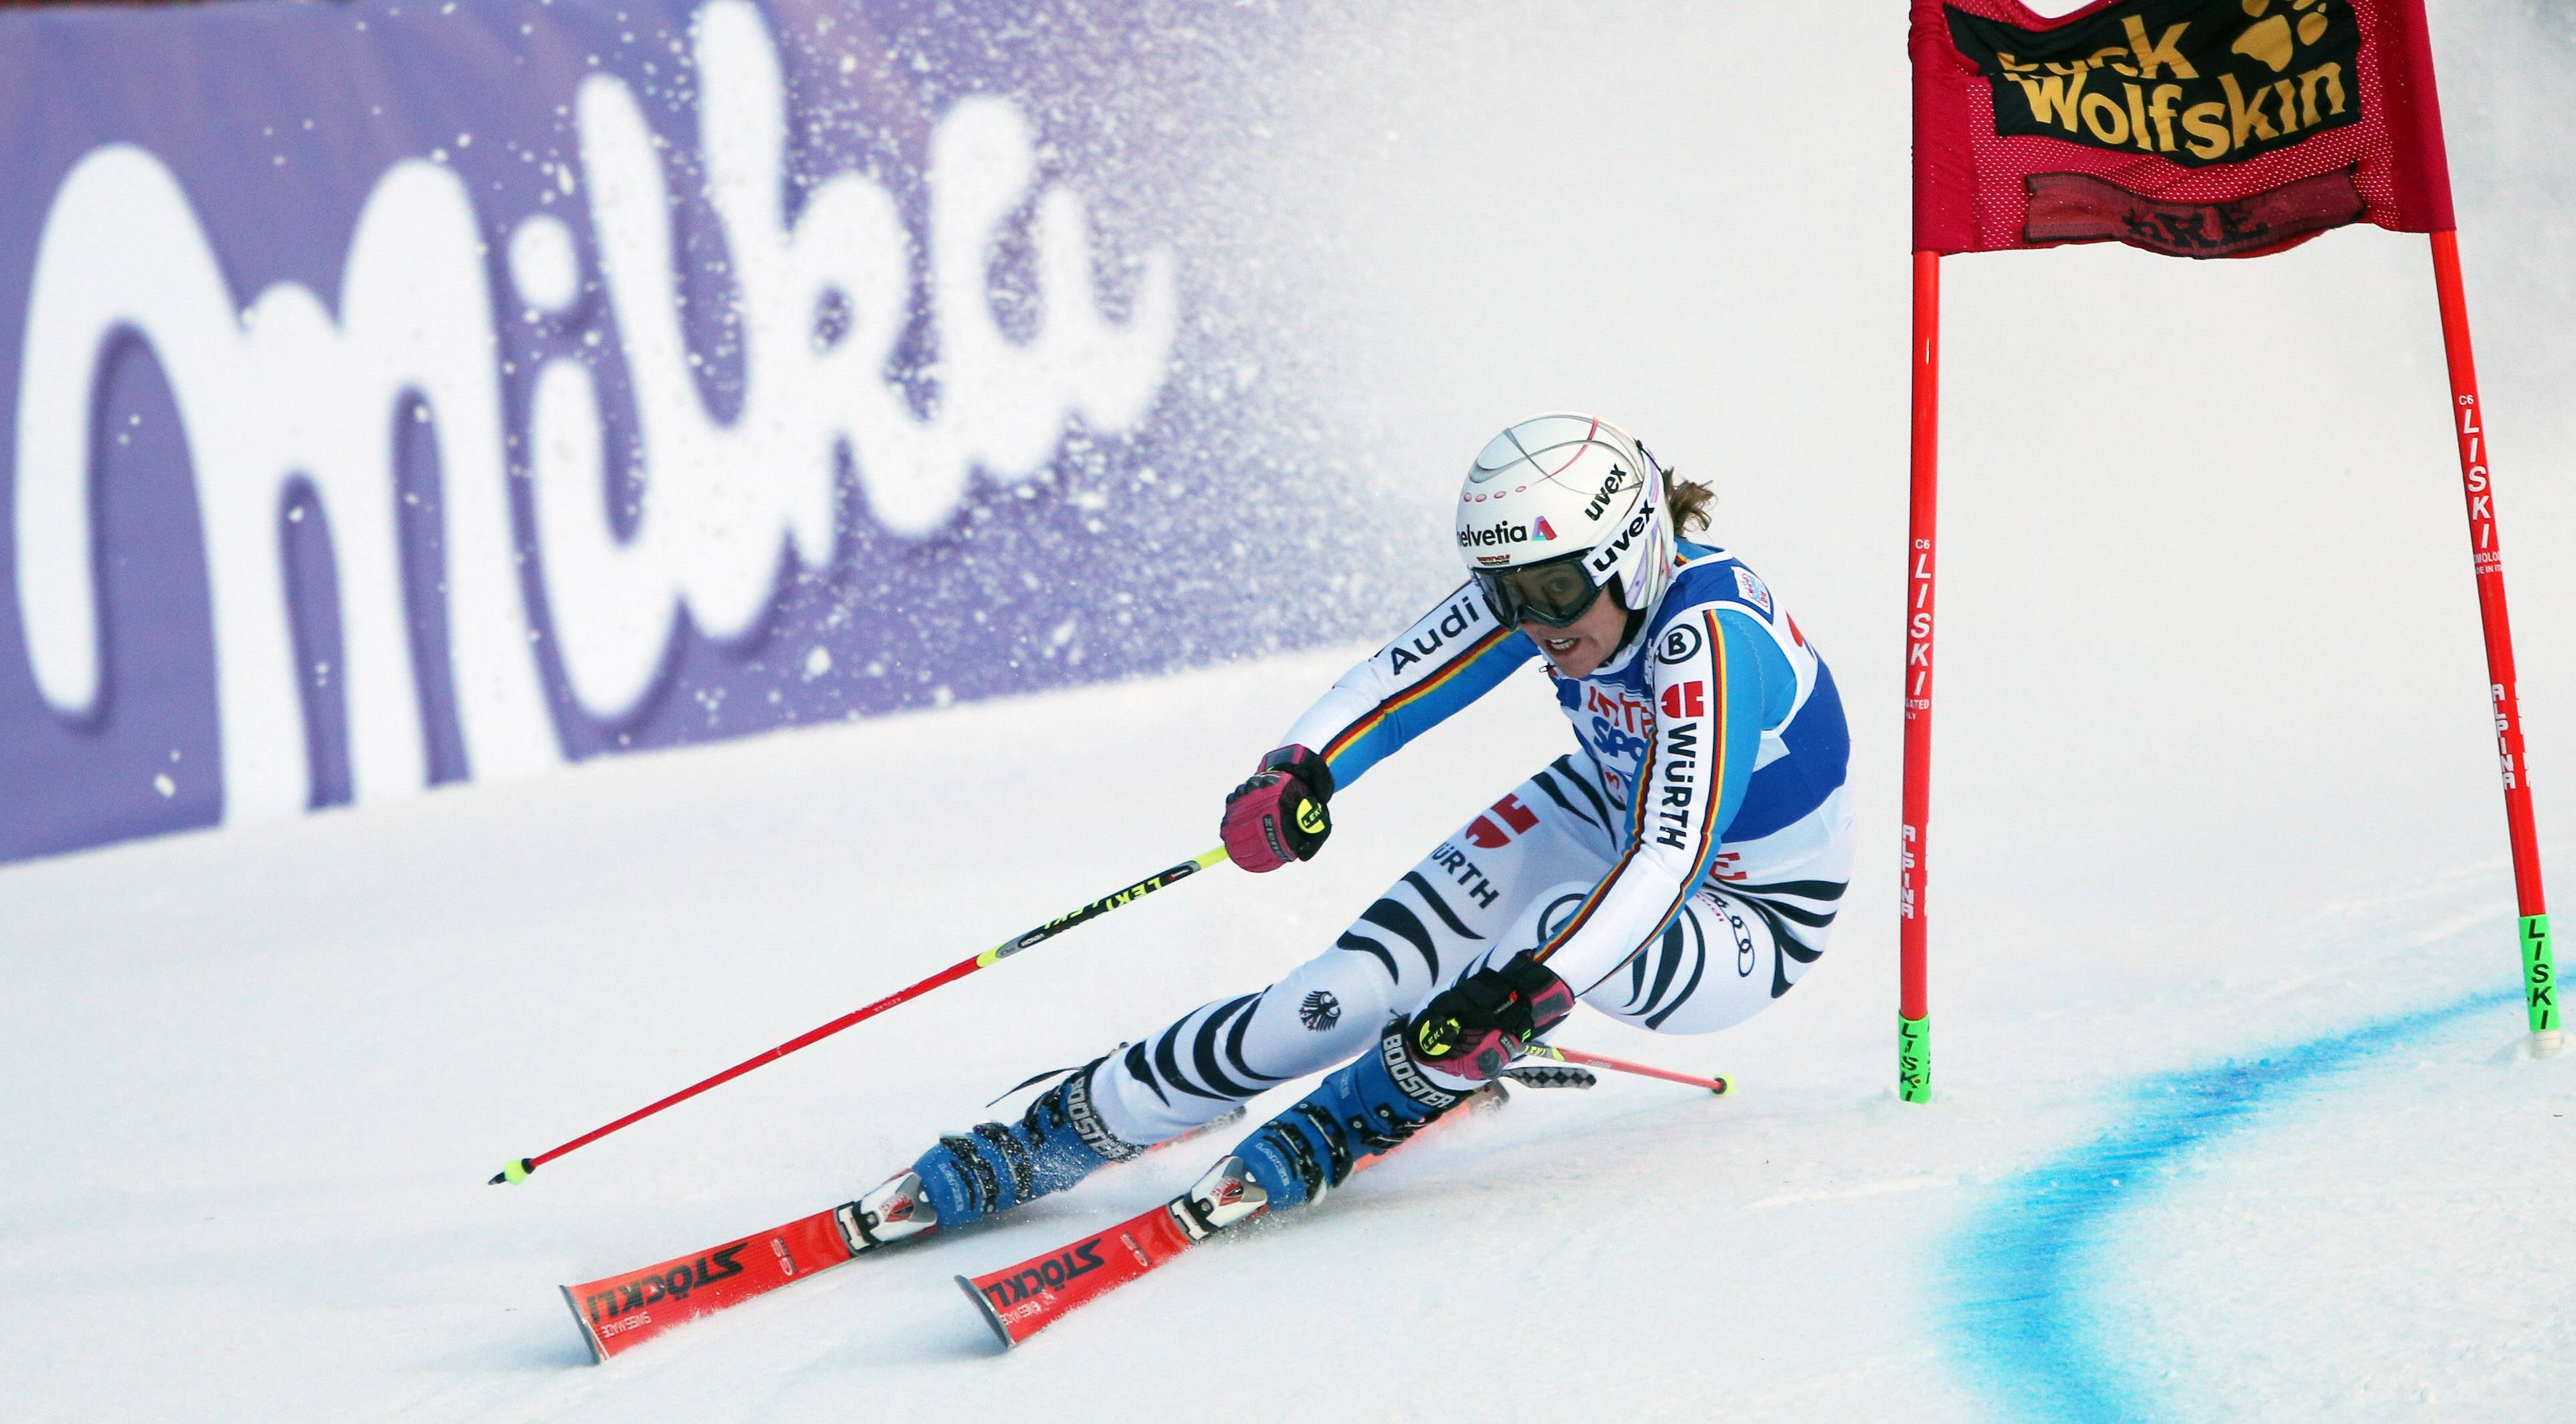 ALPINE SKIING - FIS WC Are AARE,SWEDEN,12.DEC.15 - ALPINE SKIING - FIS World Cup, Giant Slalom, Ladies. Image Shows Viktoria Rebensburg (GER). Keywords: Stoeckli. PUBLICATIONxINxGERxHUNxONLY GEPAxpictures/xThomasxBachun  Alpine Skiing FIS WC Are Aare Sweden 12 DEC 15 Alpine Skiing FIS World Cup Giant Slalom Ladies Image Shows Viktoria Vine Castle Ger Keywords Stoeckli PUBLICATIONxINxGERxHUNxONLY GEPAxpictures XThomasxBachun